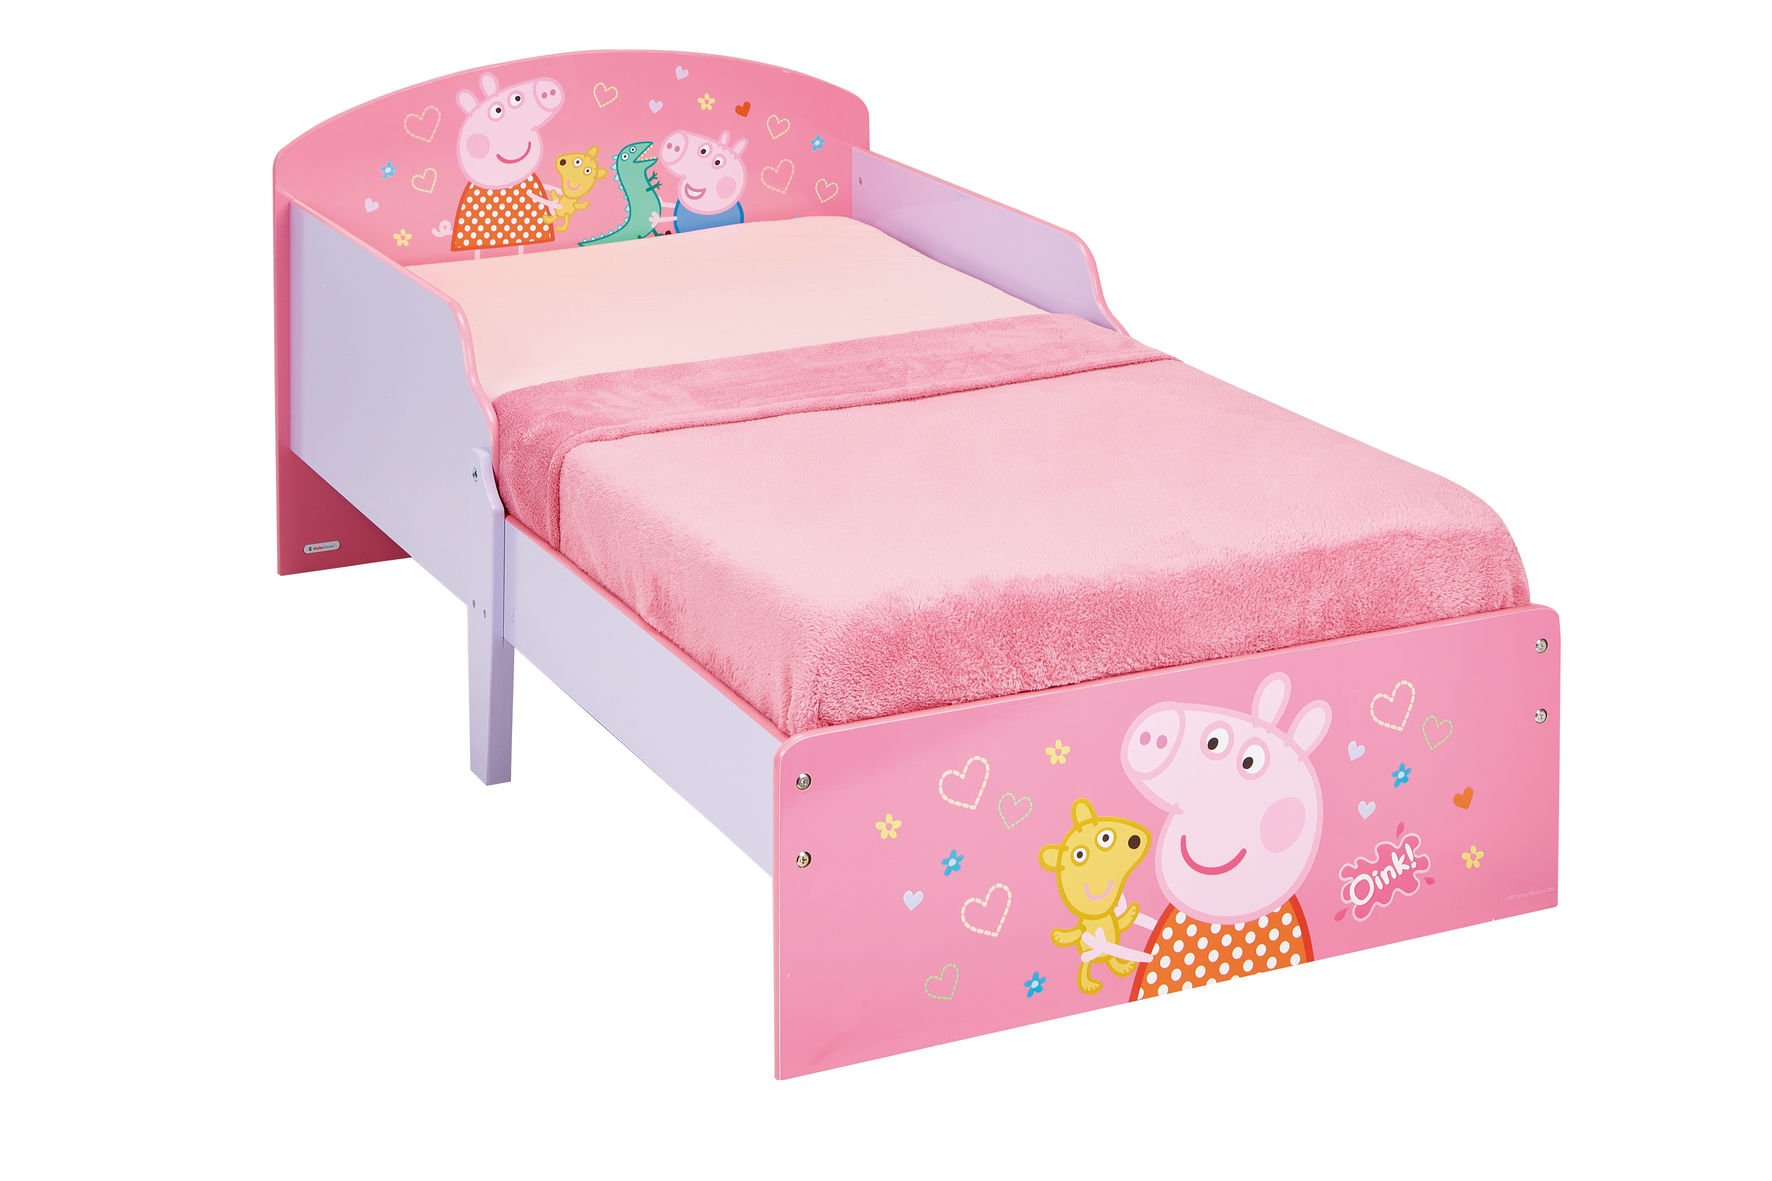 Peppa Pig Kids Toddler Bed by HelloHome Peppa Pig. Snuggle in after a day of play in this Peppa Pig Toddler Bed Perfect size for toddlers, low to the ground with protective and sturdy side guards to keep your little one safe and snug Fits a standard cot bed mattress size 140cm x 70cm, mattress not included. Part of the Peppa Pig bedroom furniture range from HelloHome 21